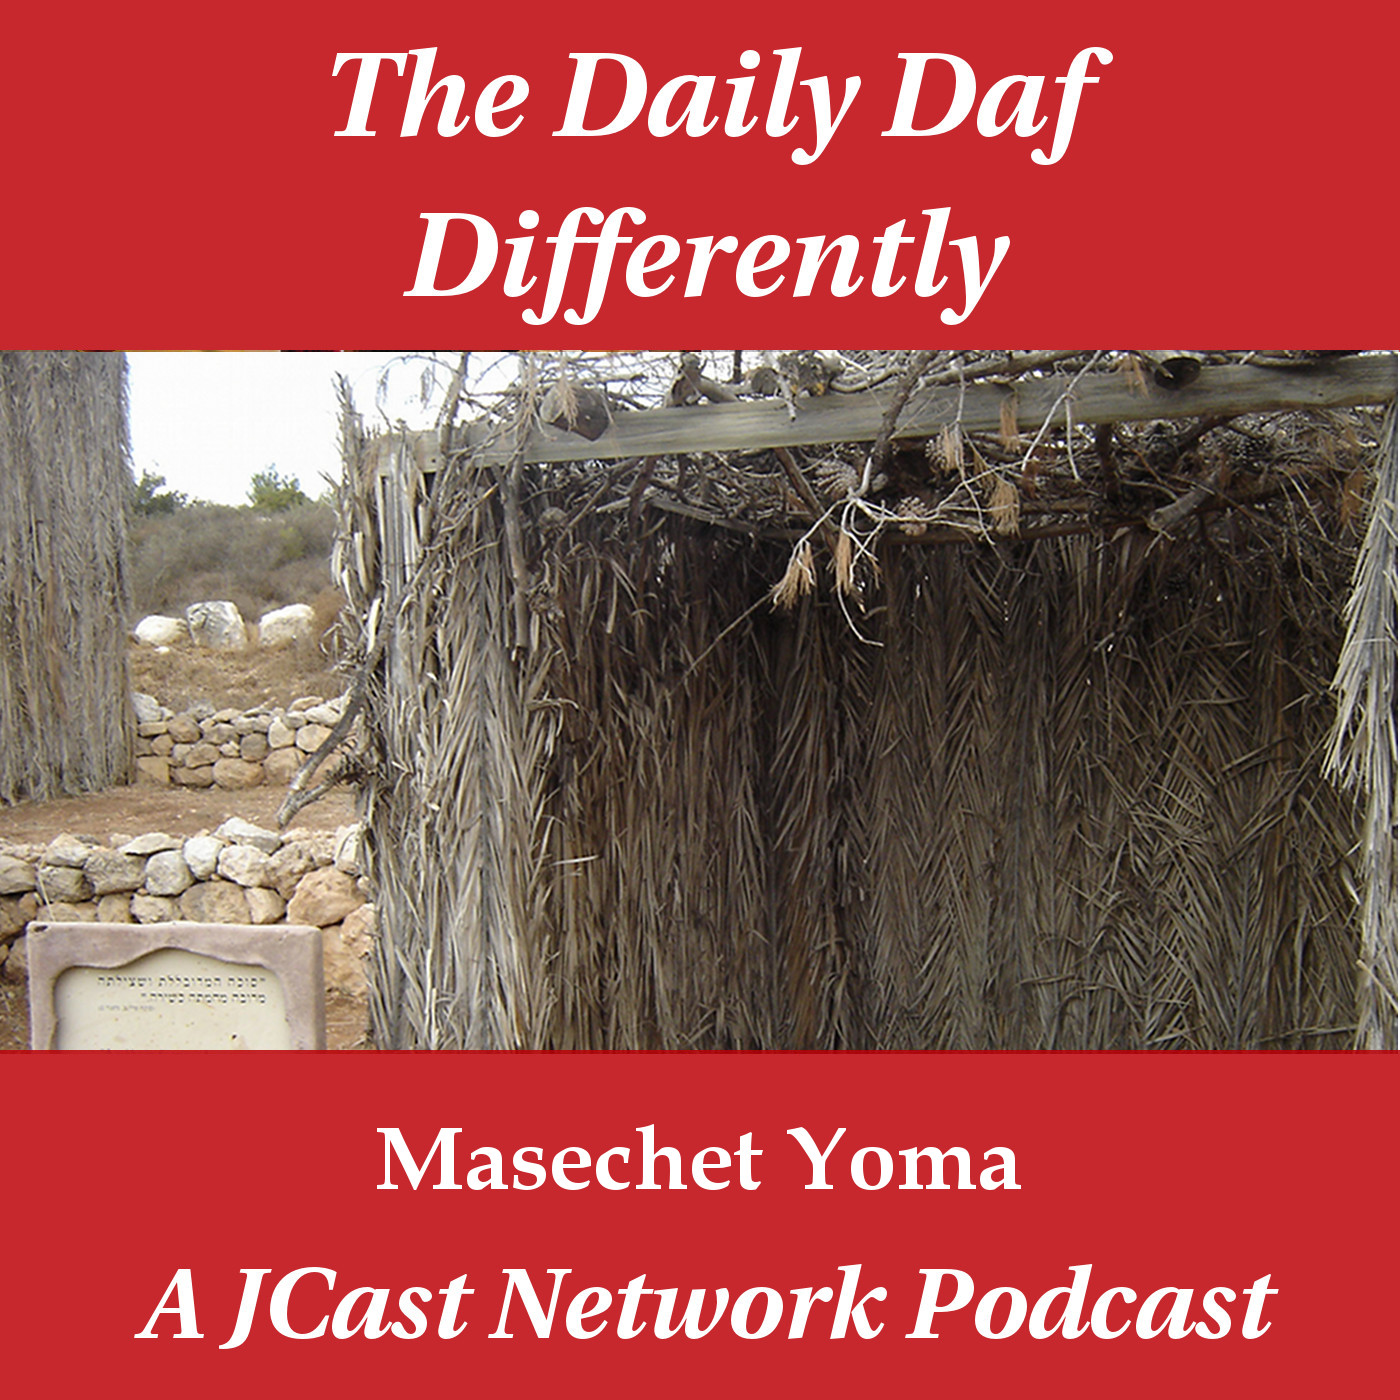 Daily Daf Differently: Masechet Sukkah